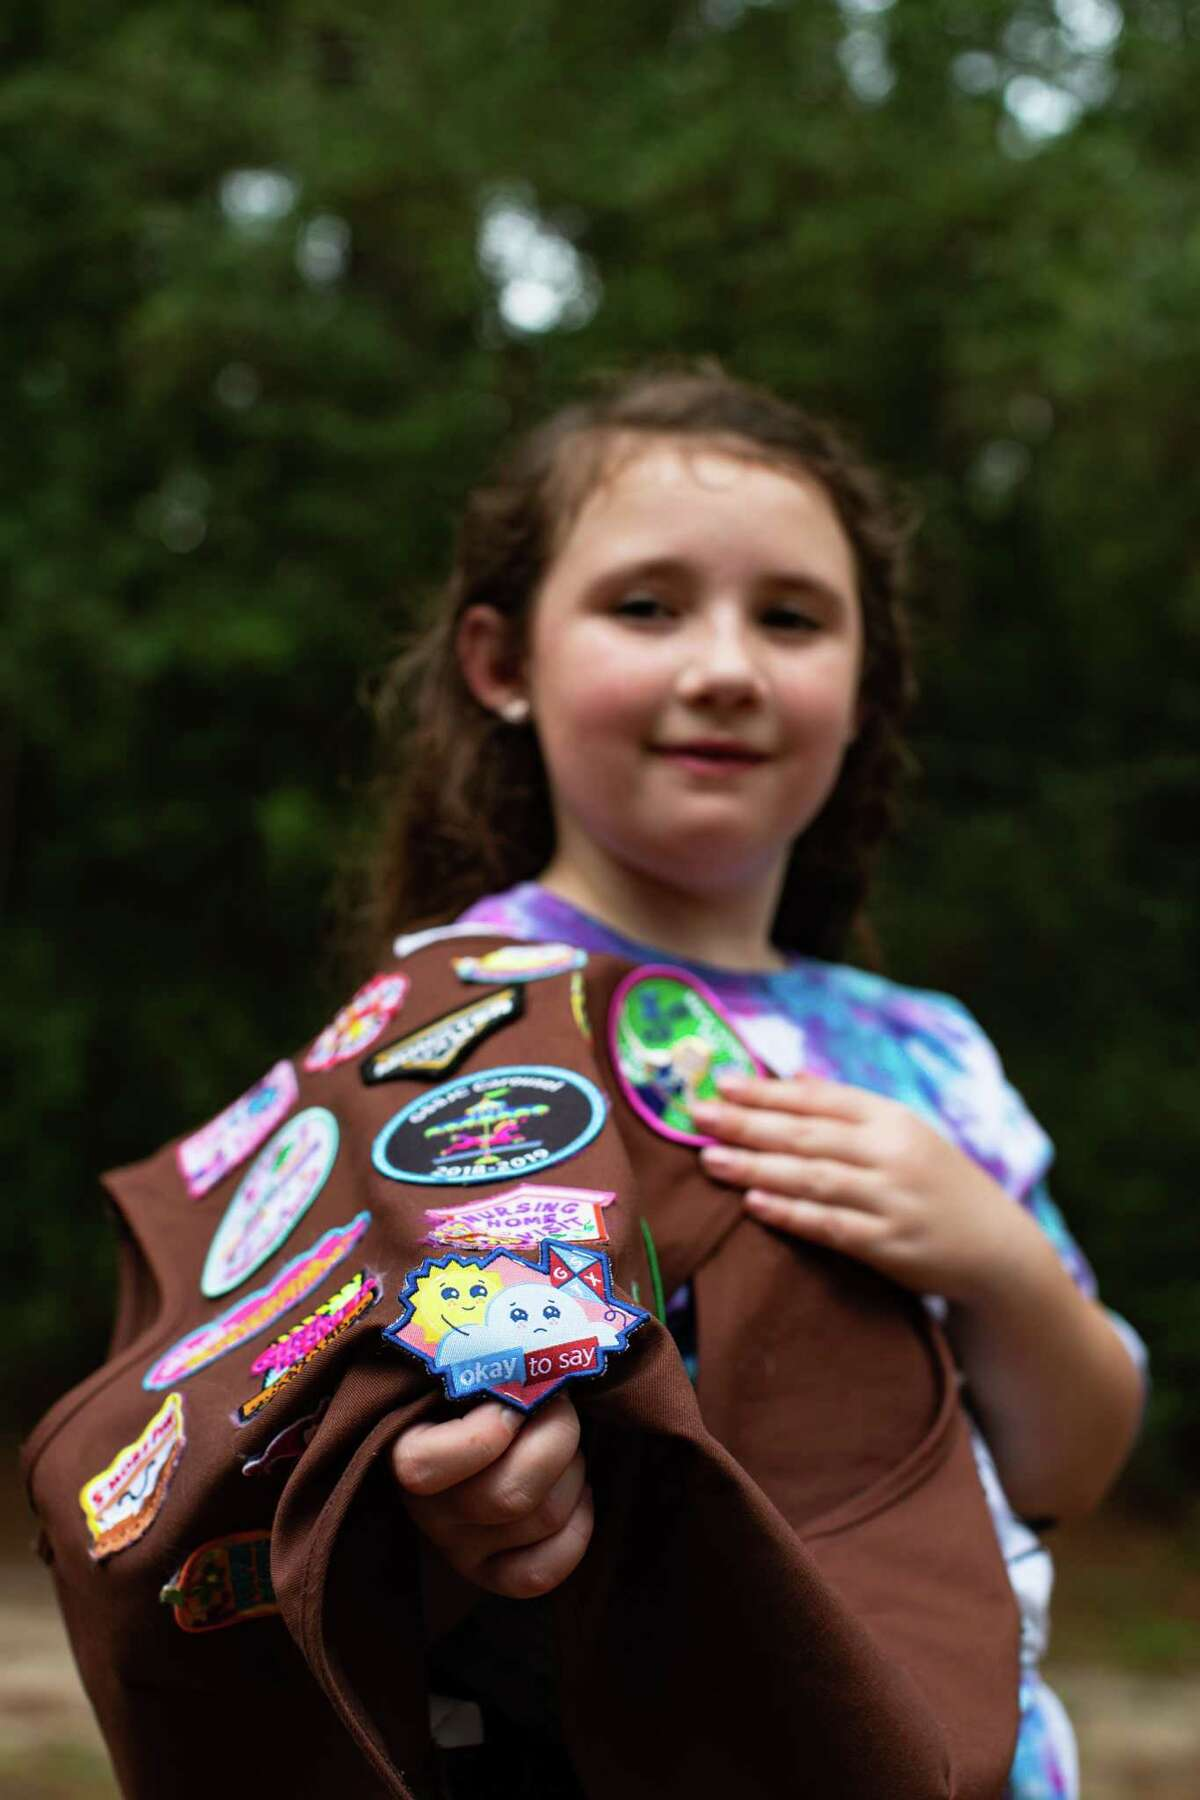 Girl Scout Troop 118037 member Emily Likeness, 9, shows her Okay to Say mental health badge, Wednesday, Sept. 1, 2021, in Atascocita.